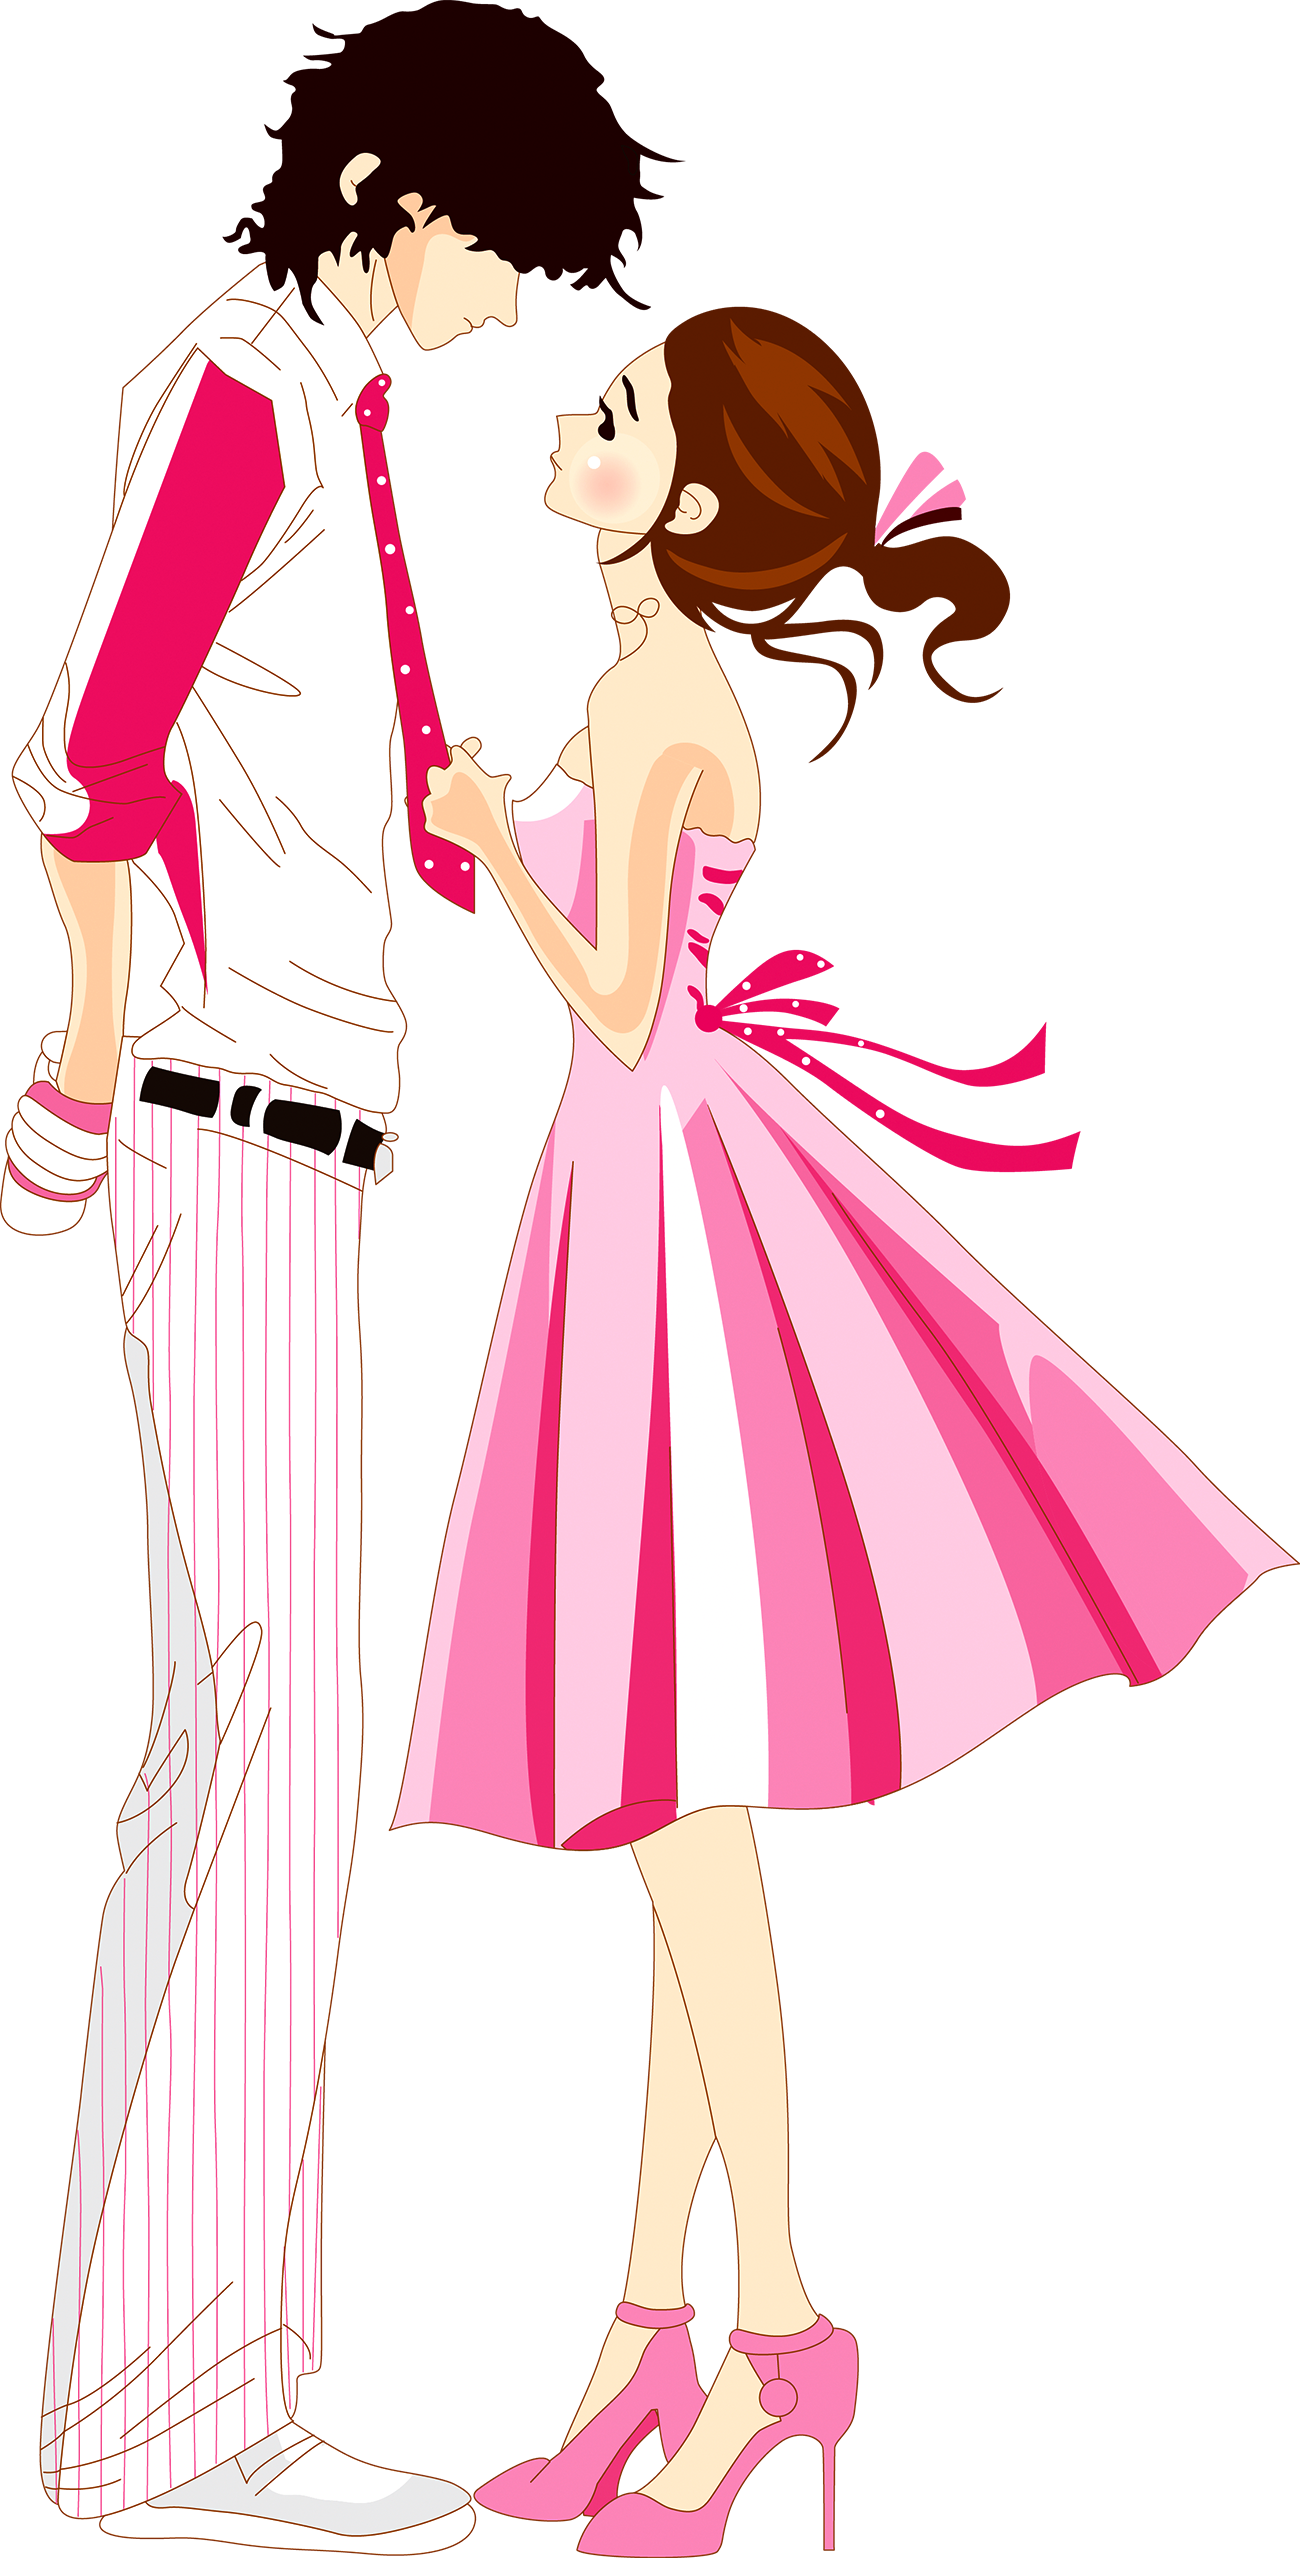 Download Love Romantic Cartoon Png PNG Image with No.